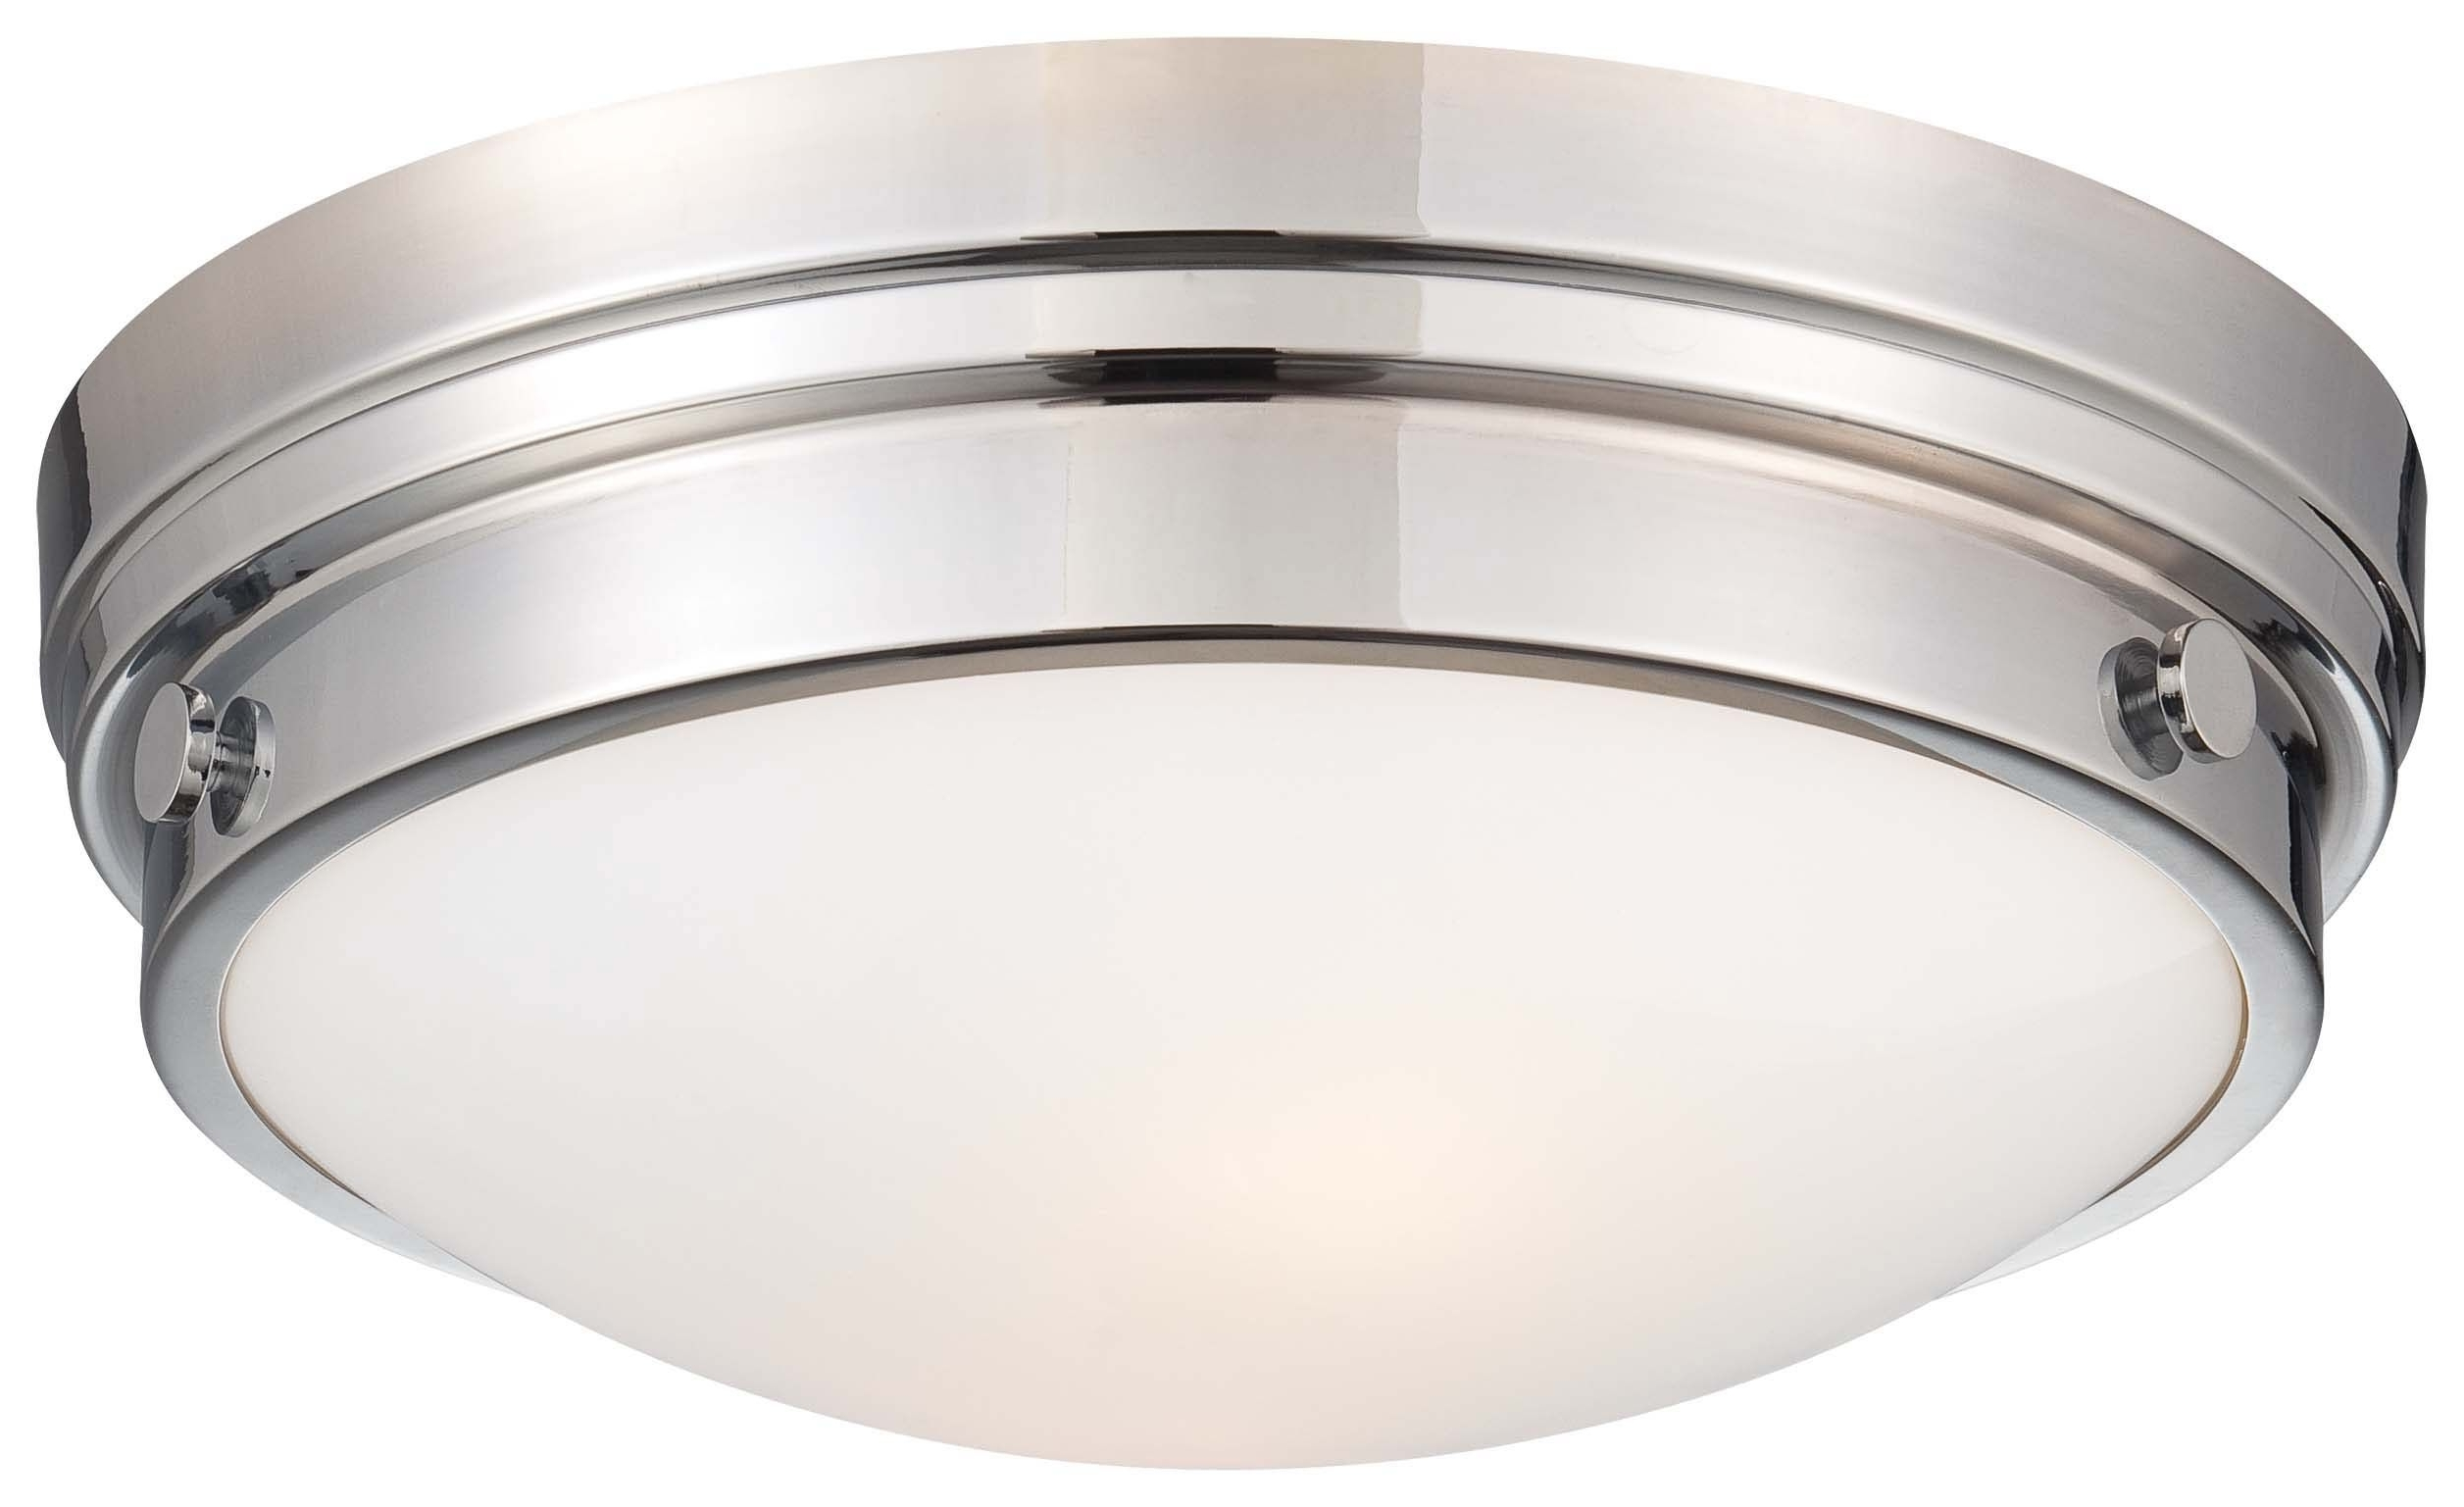 Outdoor Fluorescent Ceiling Lights Inside Most Recent Light : Best Kitchen Light Fixtures Dining Room Lighting For (View 15 of 20)